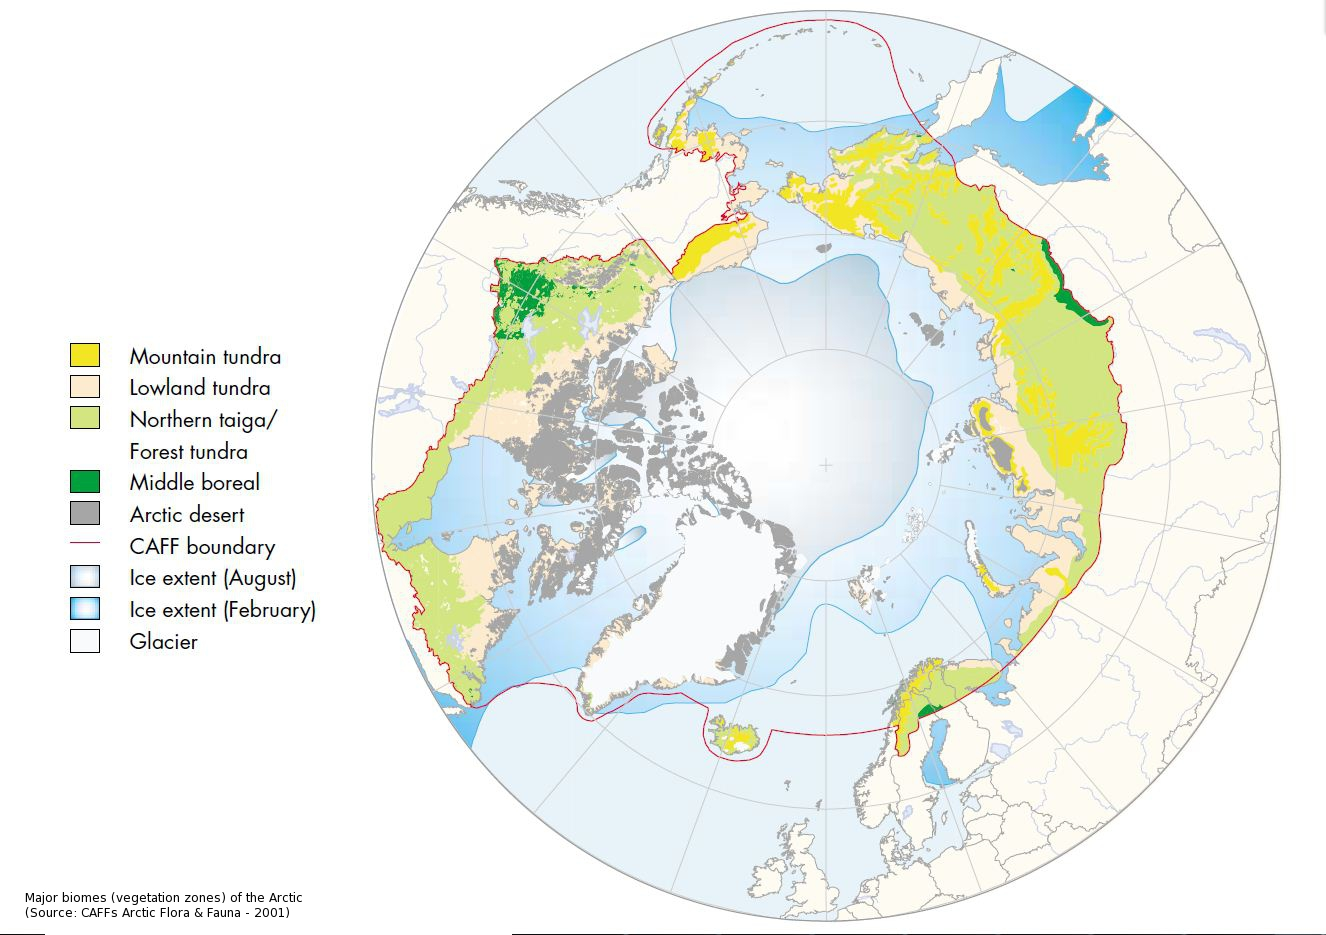 Caff map no33 major biomes vegetation zones of the arctic caff map no33 major biomes vegetation zones of the arctic gumiabroncs Gallery